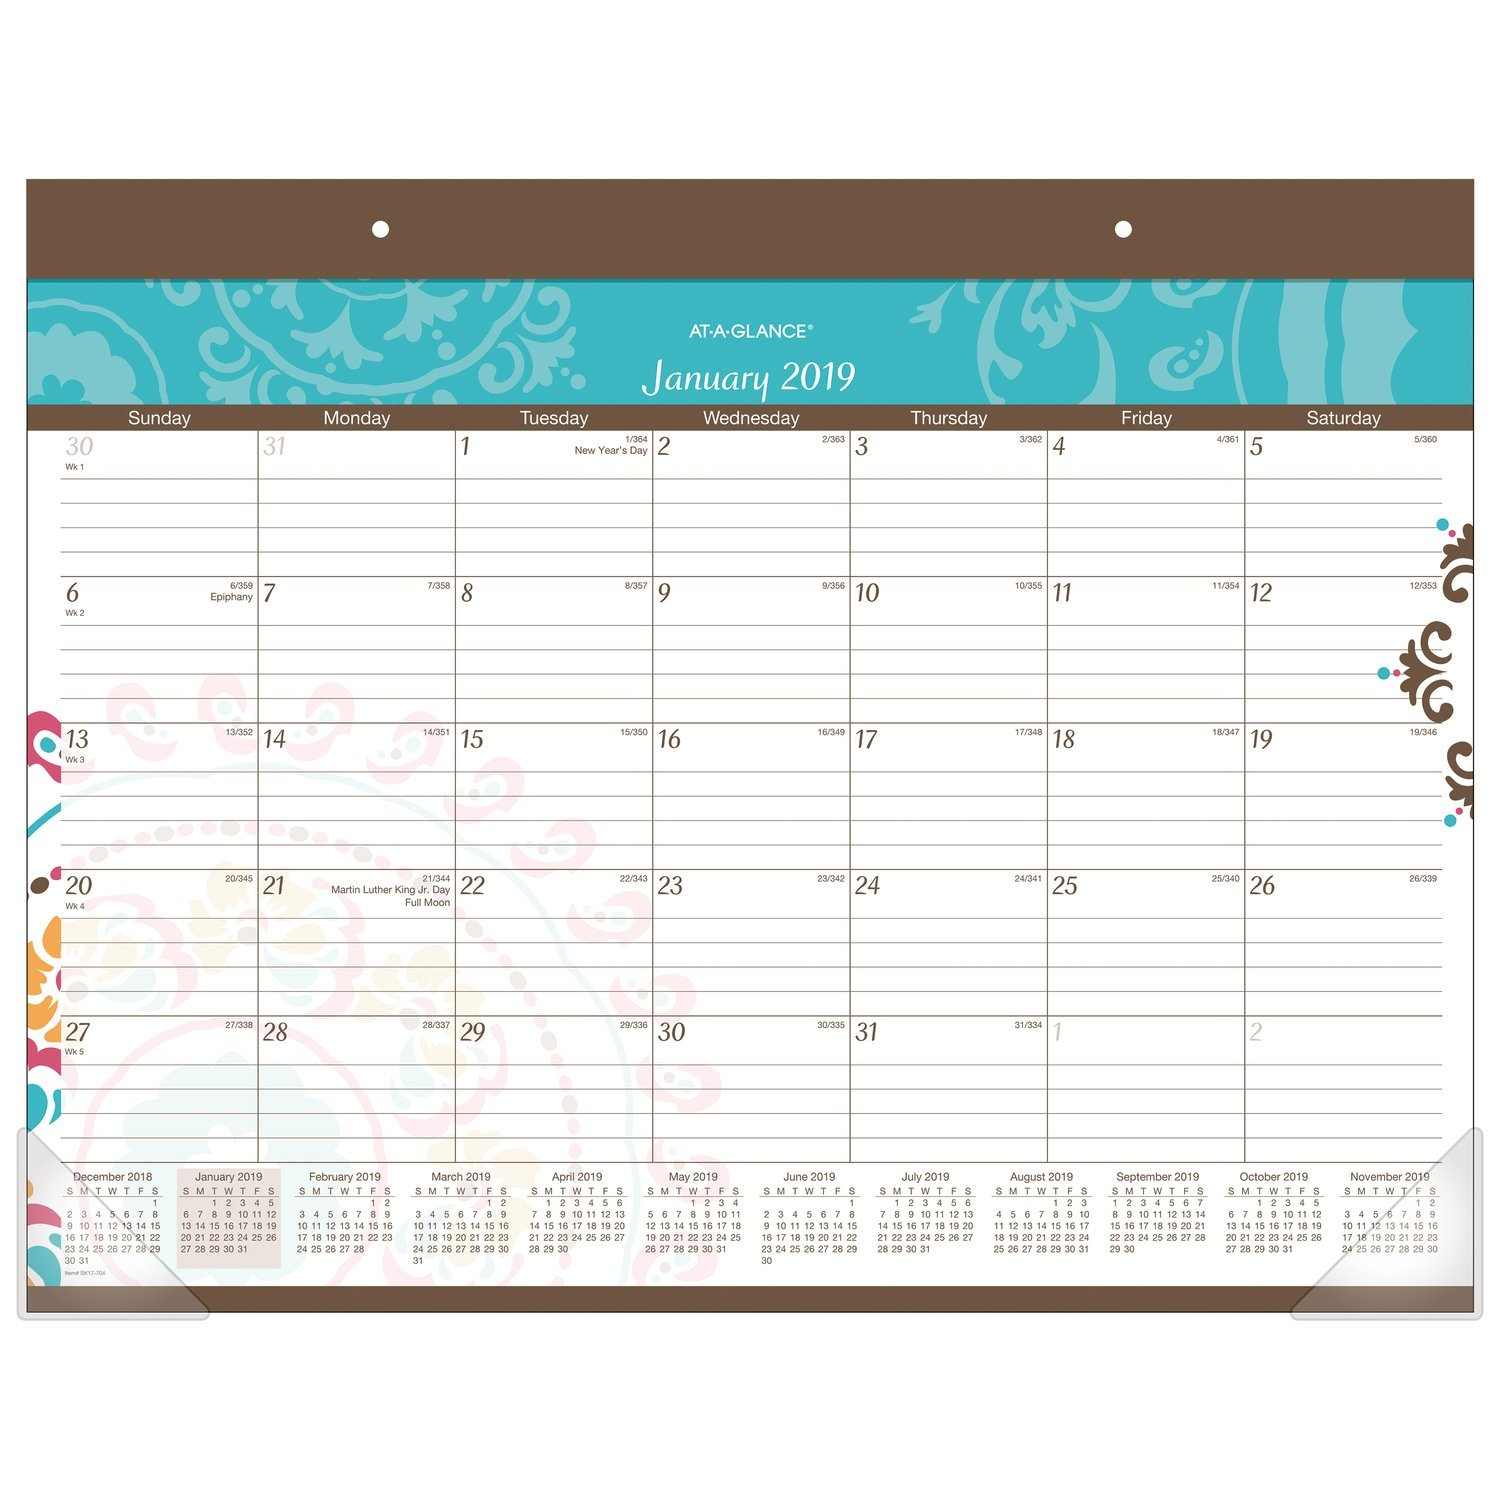 AT-A-GLANCE Monthly Desk Pad Calendar, January 2019 - December 2019, 21-3/4'' x 17'', Suzani (SK17-704)